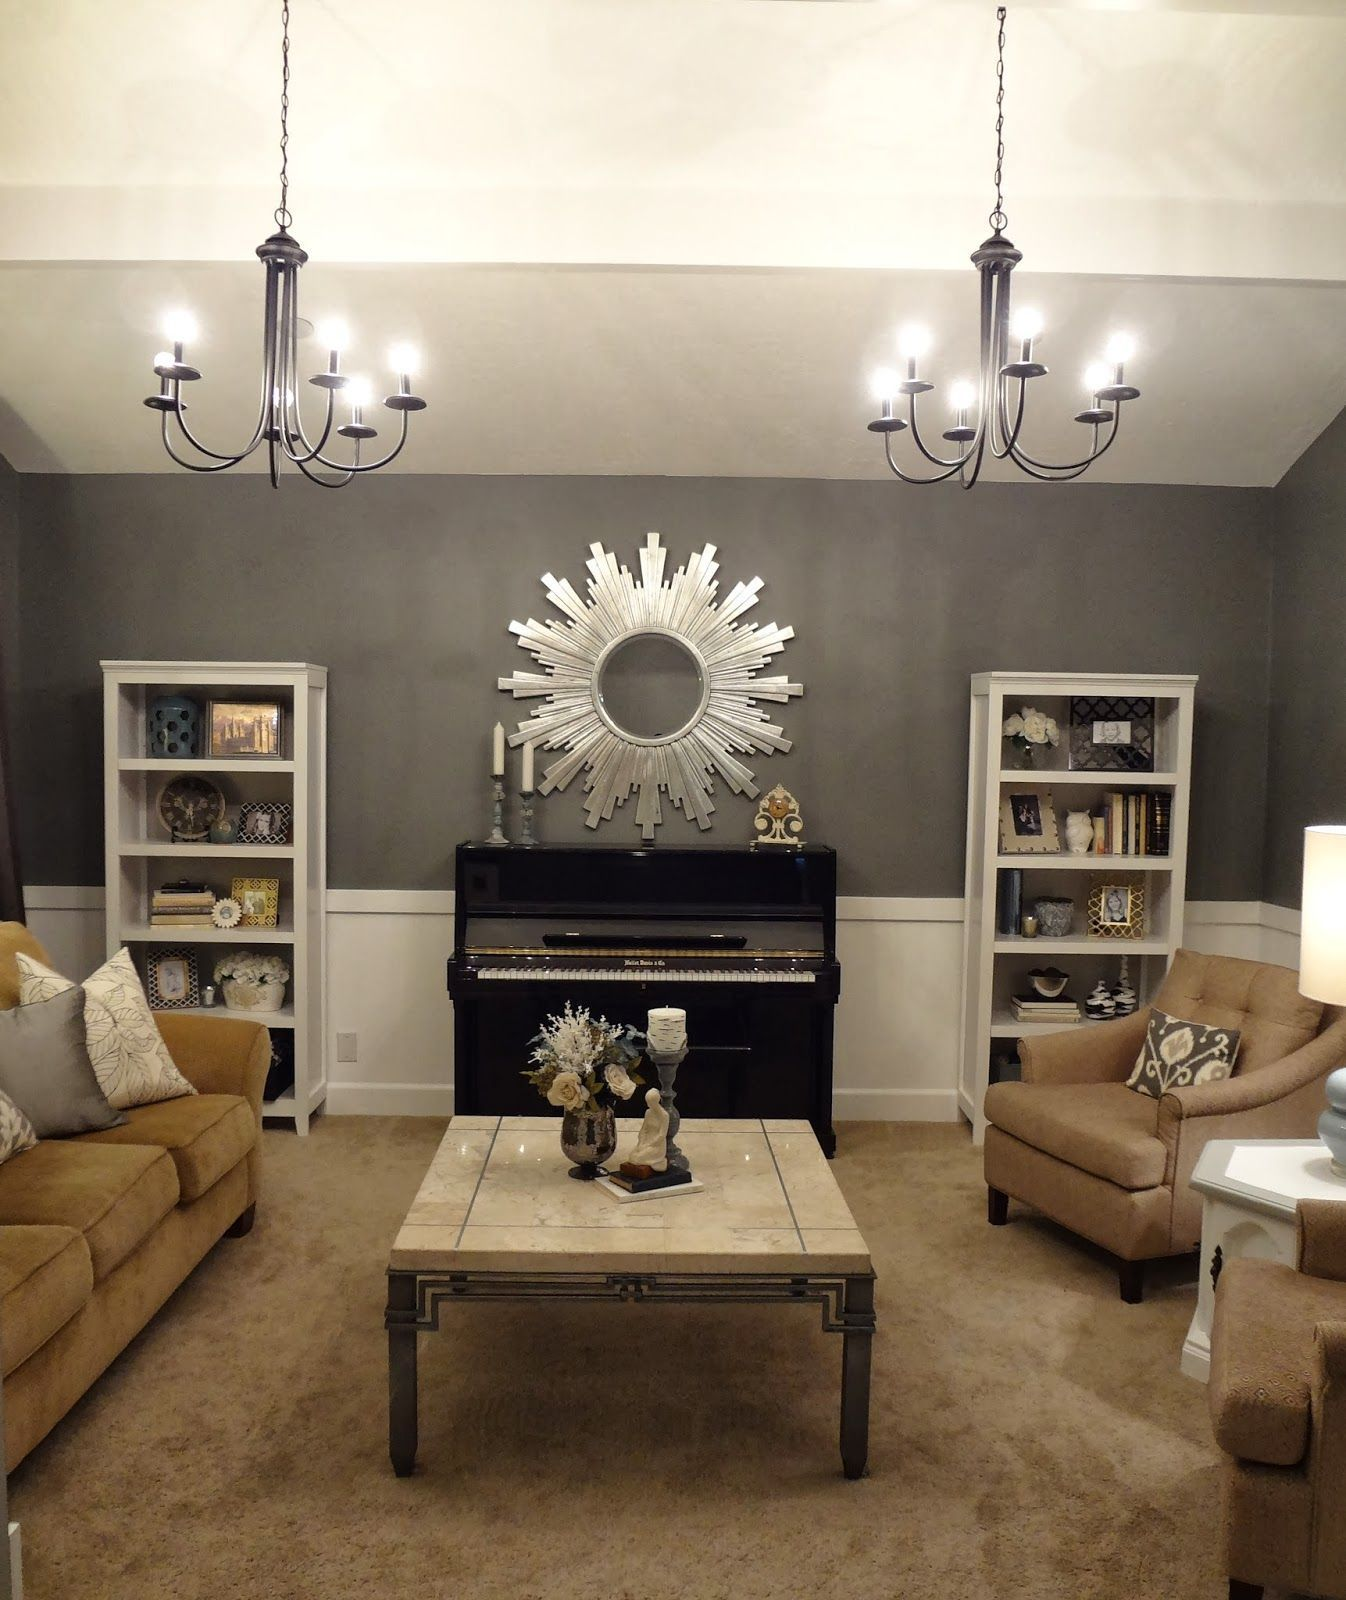 53+ Ceiling Light Fixture For Family Room Lighting Ideas images